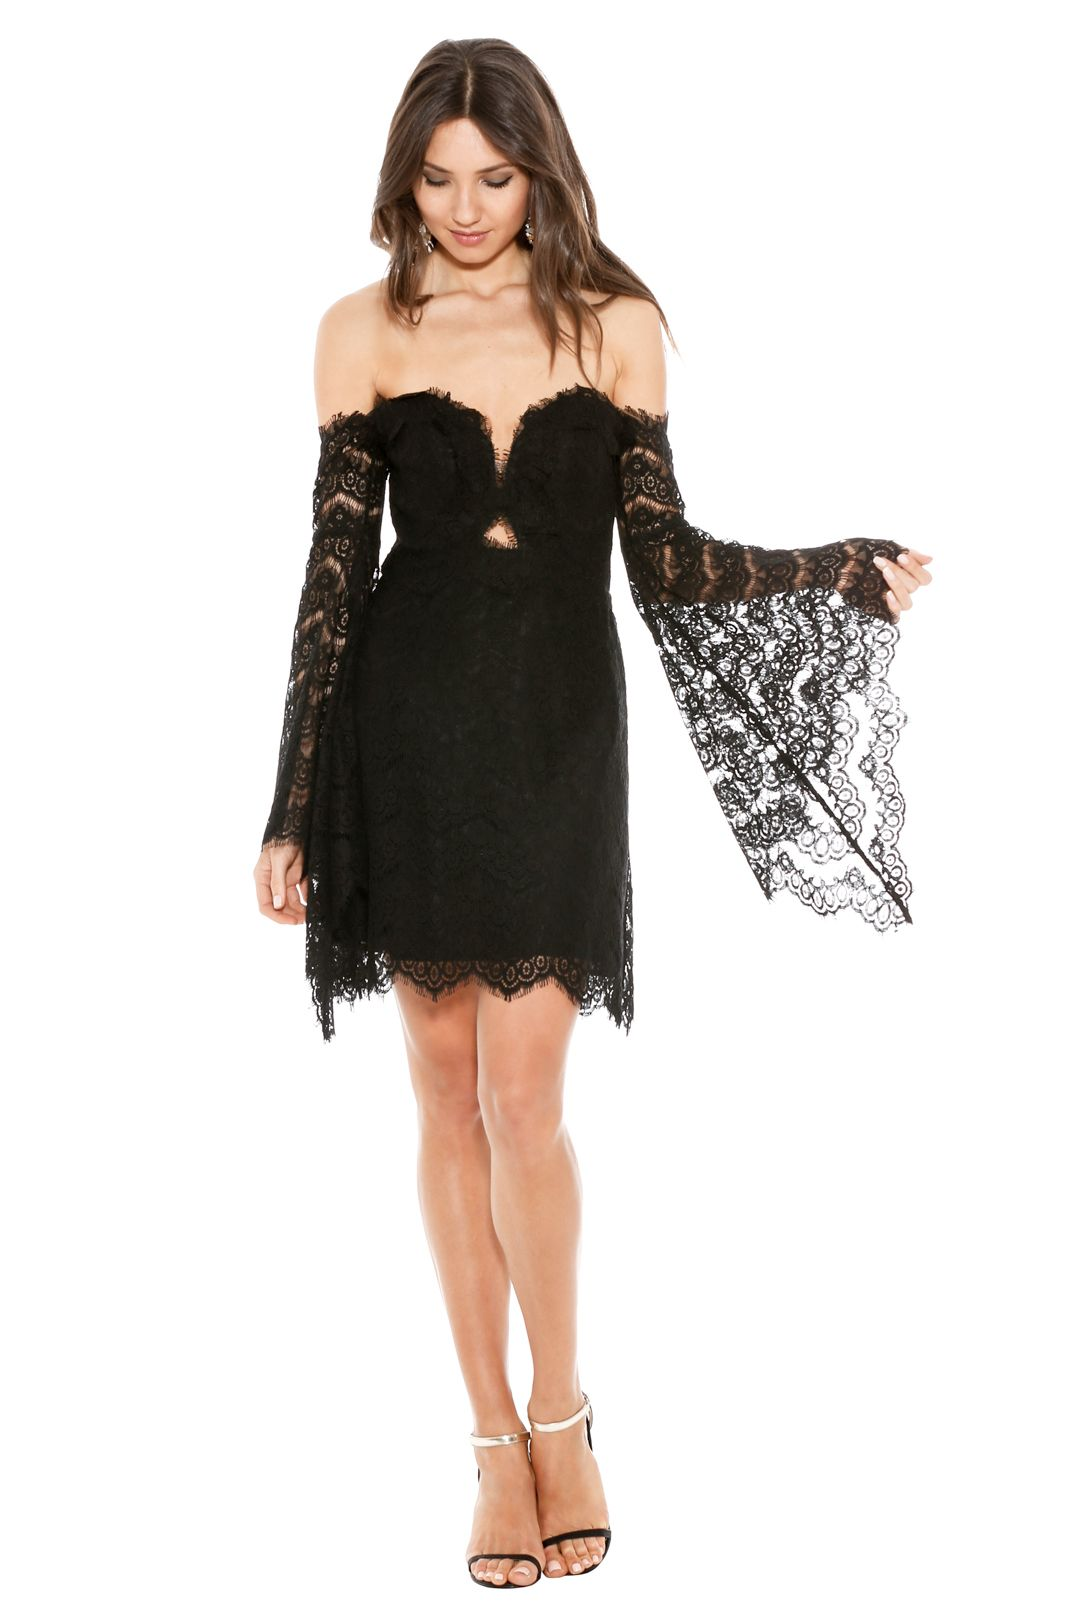 Thurley - Love Lost Dress - Black - Front